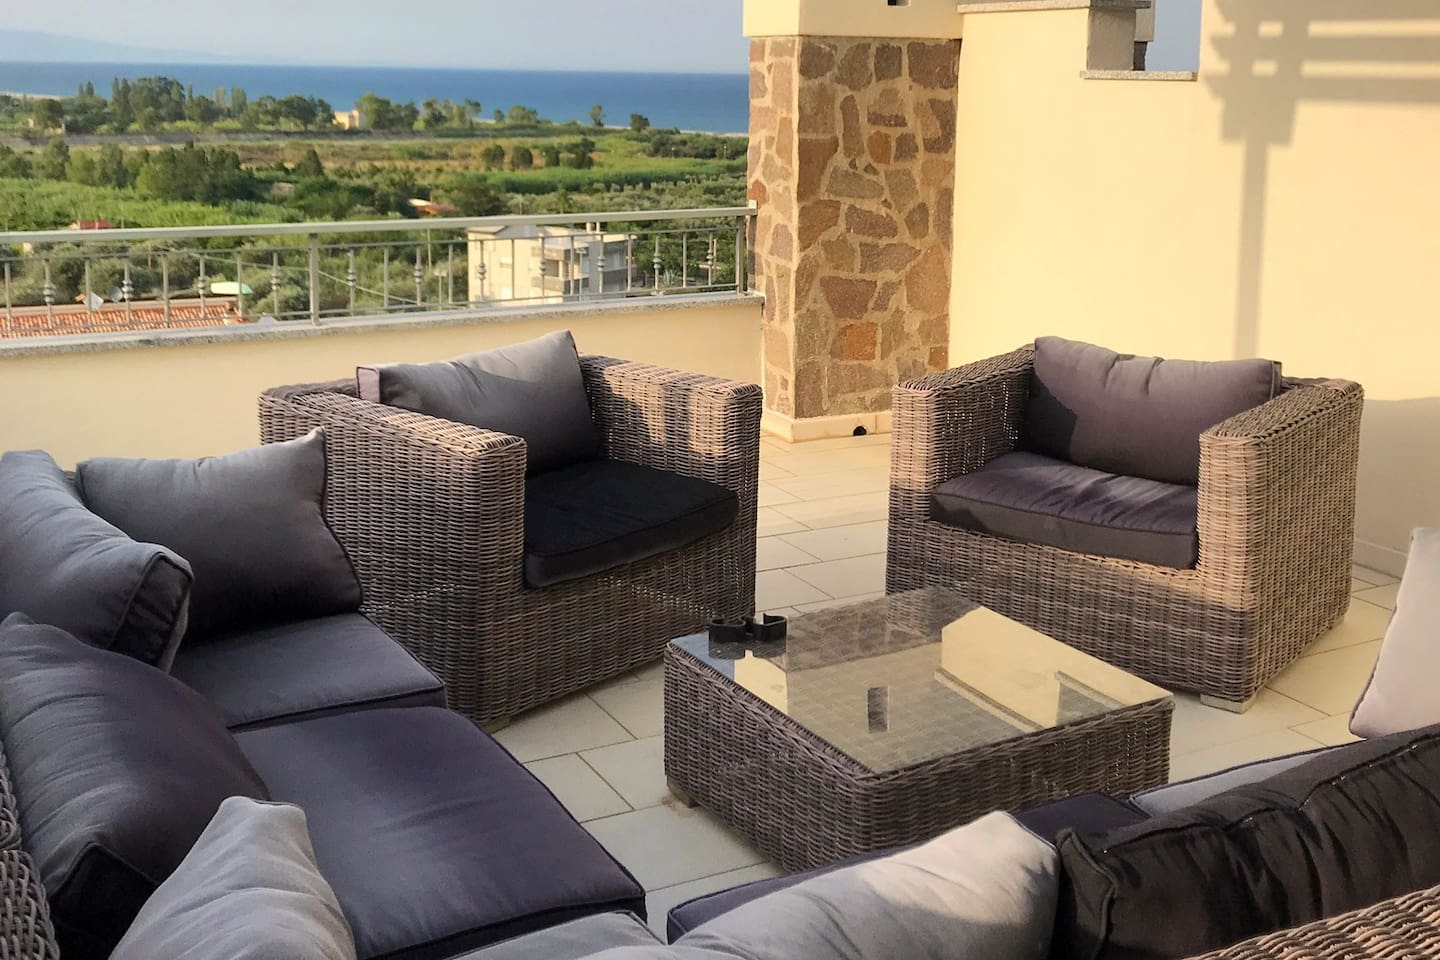 Top balcony with  launch furniture and sea view